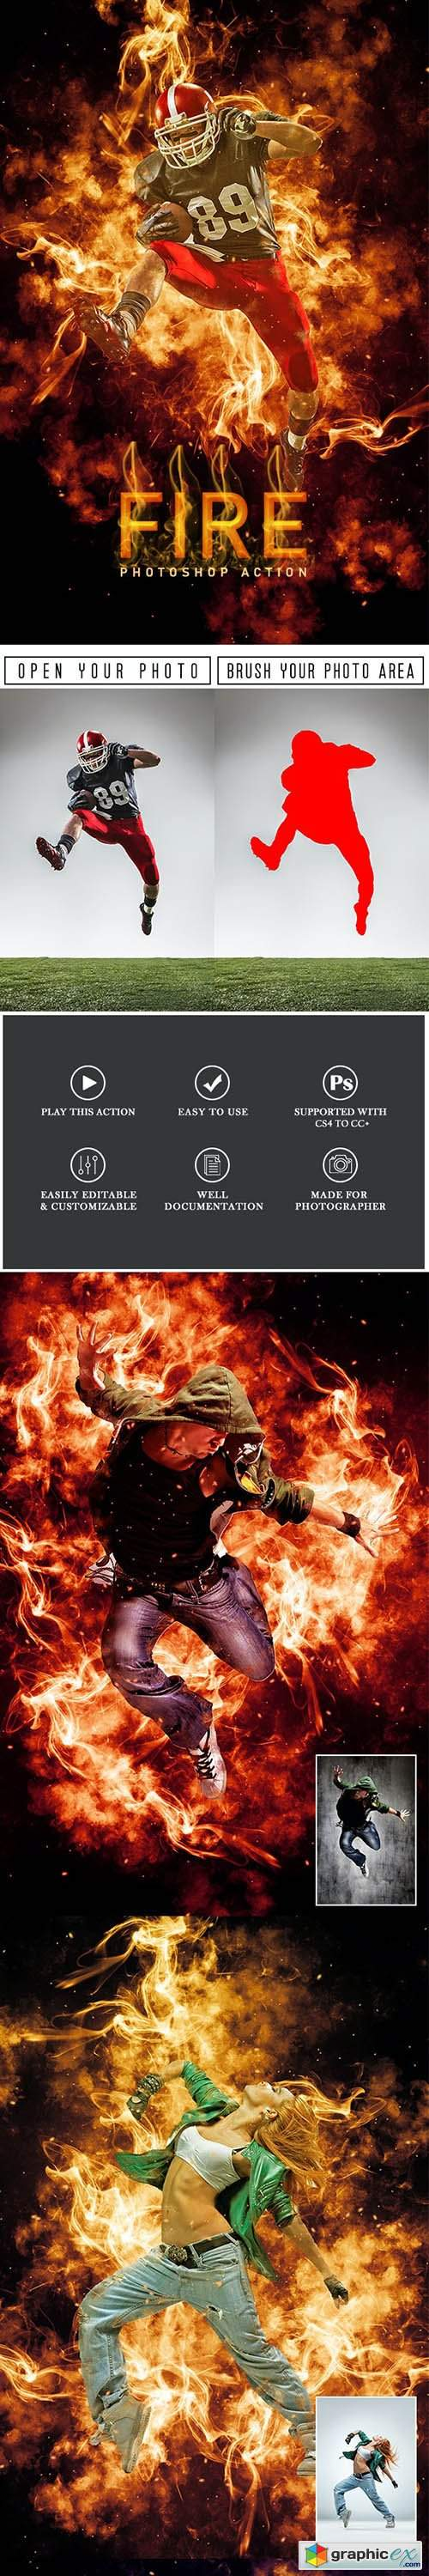 Fire Photoshop Action 29628249